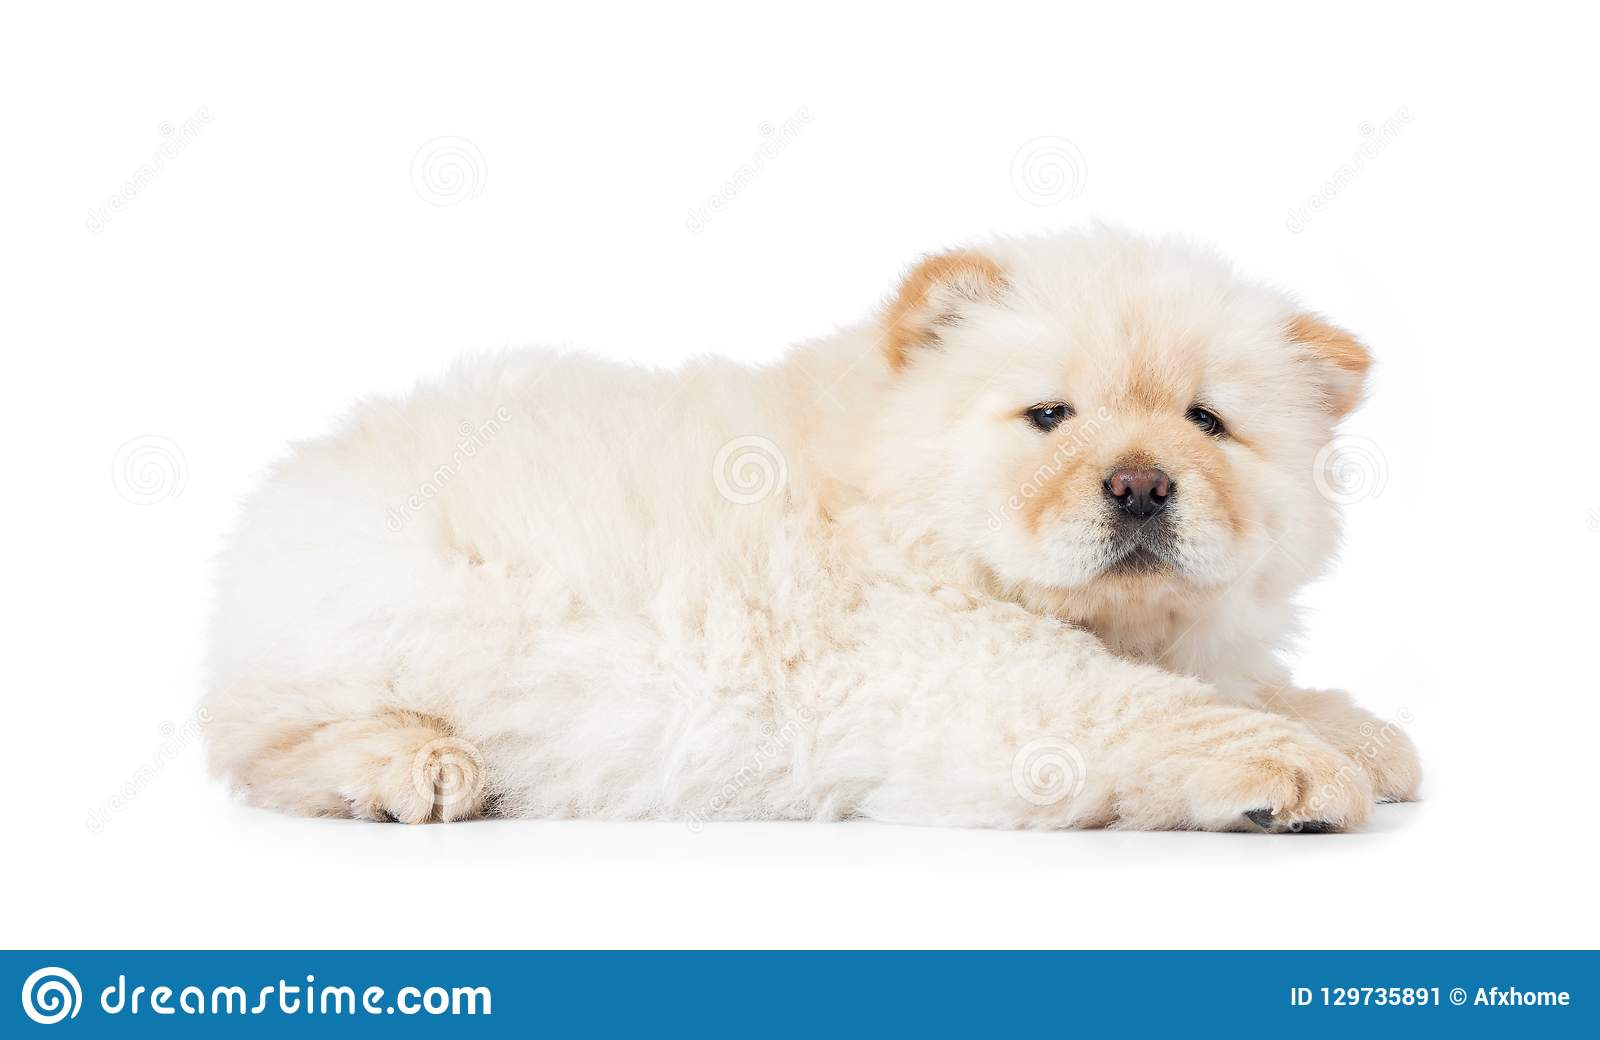 Fluffy White Chow Chow Puppy Isolated On White Background Stock